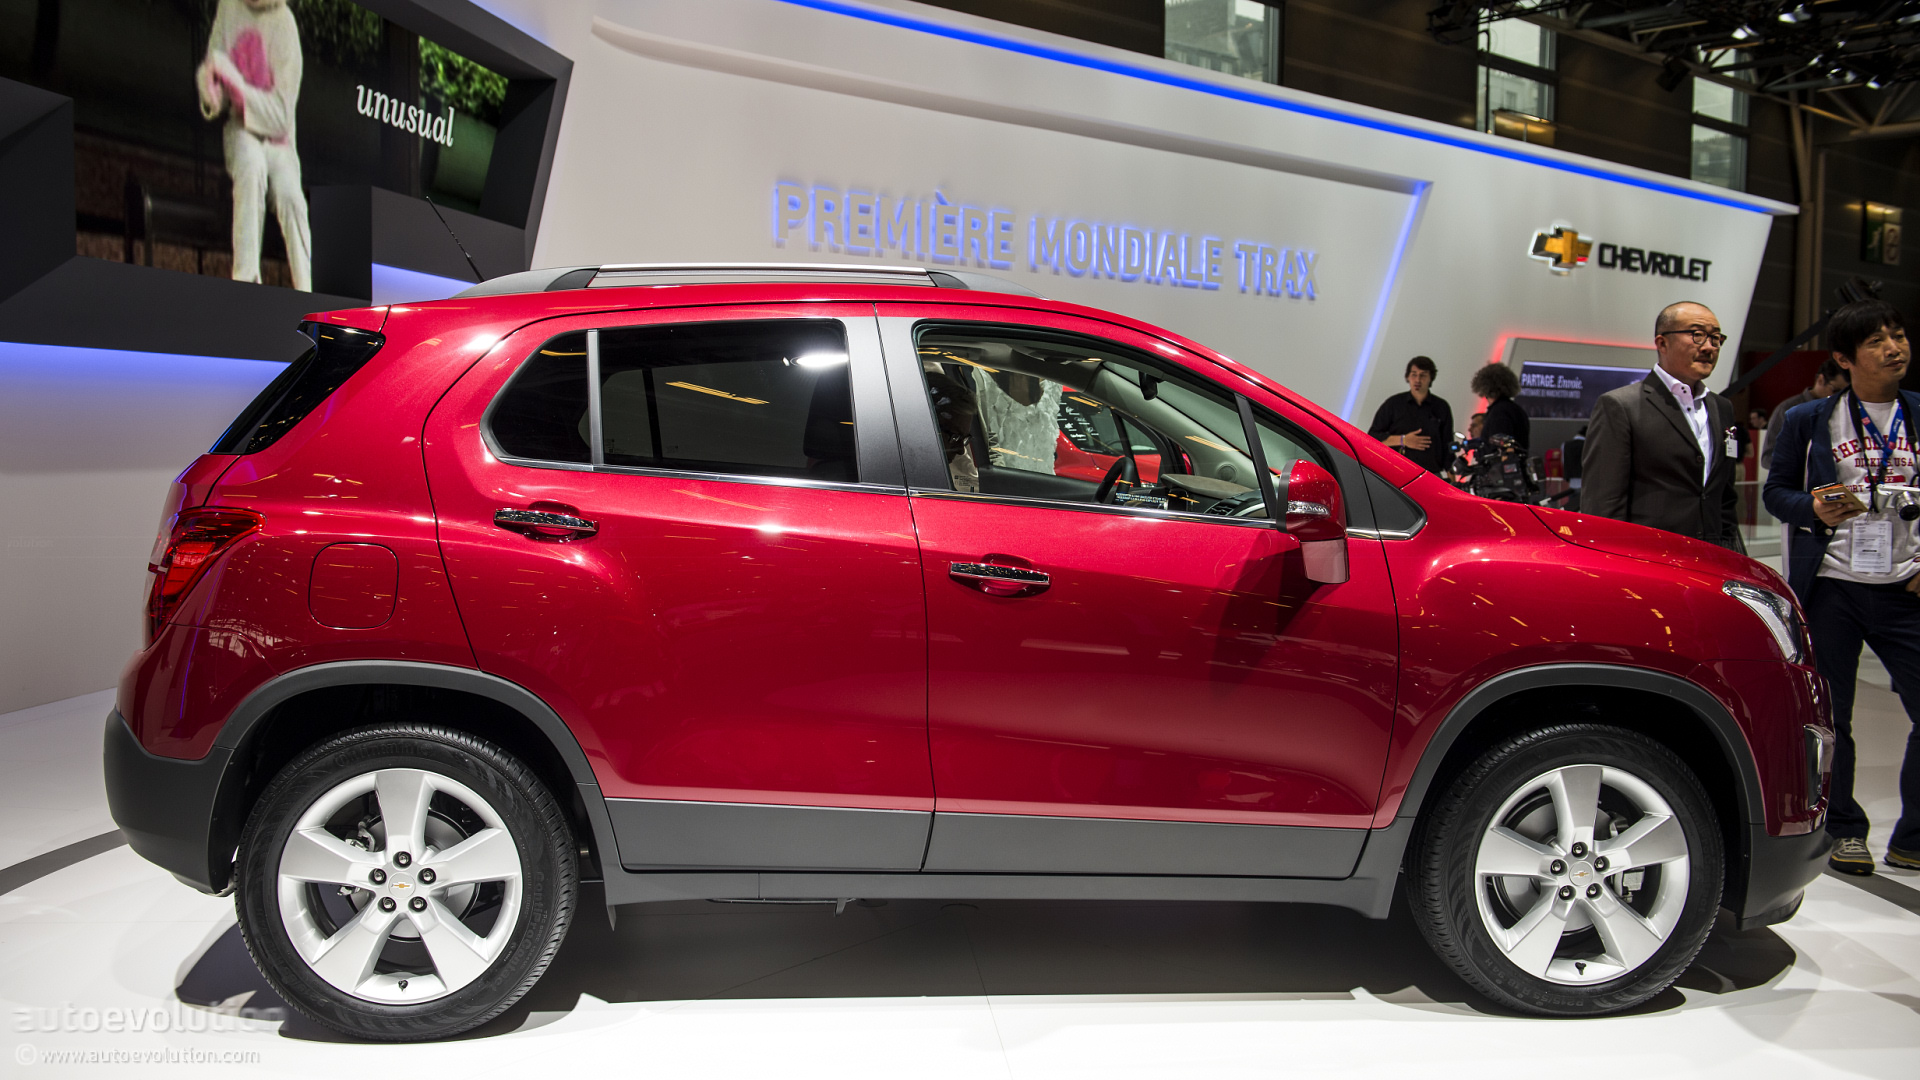 Paris 2012 Chevrolet Trax In Manchester United Theme